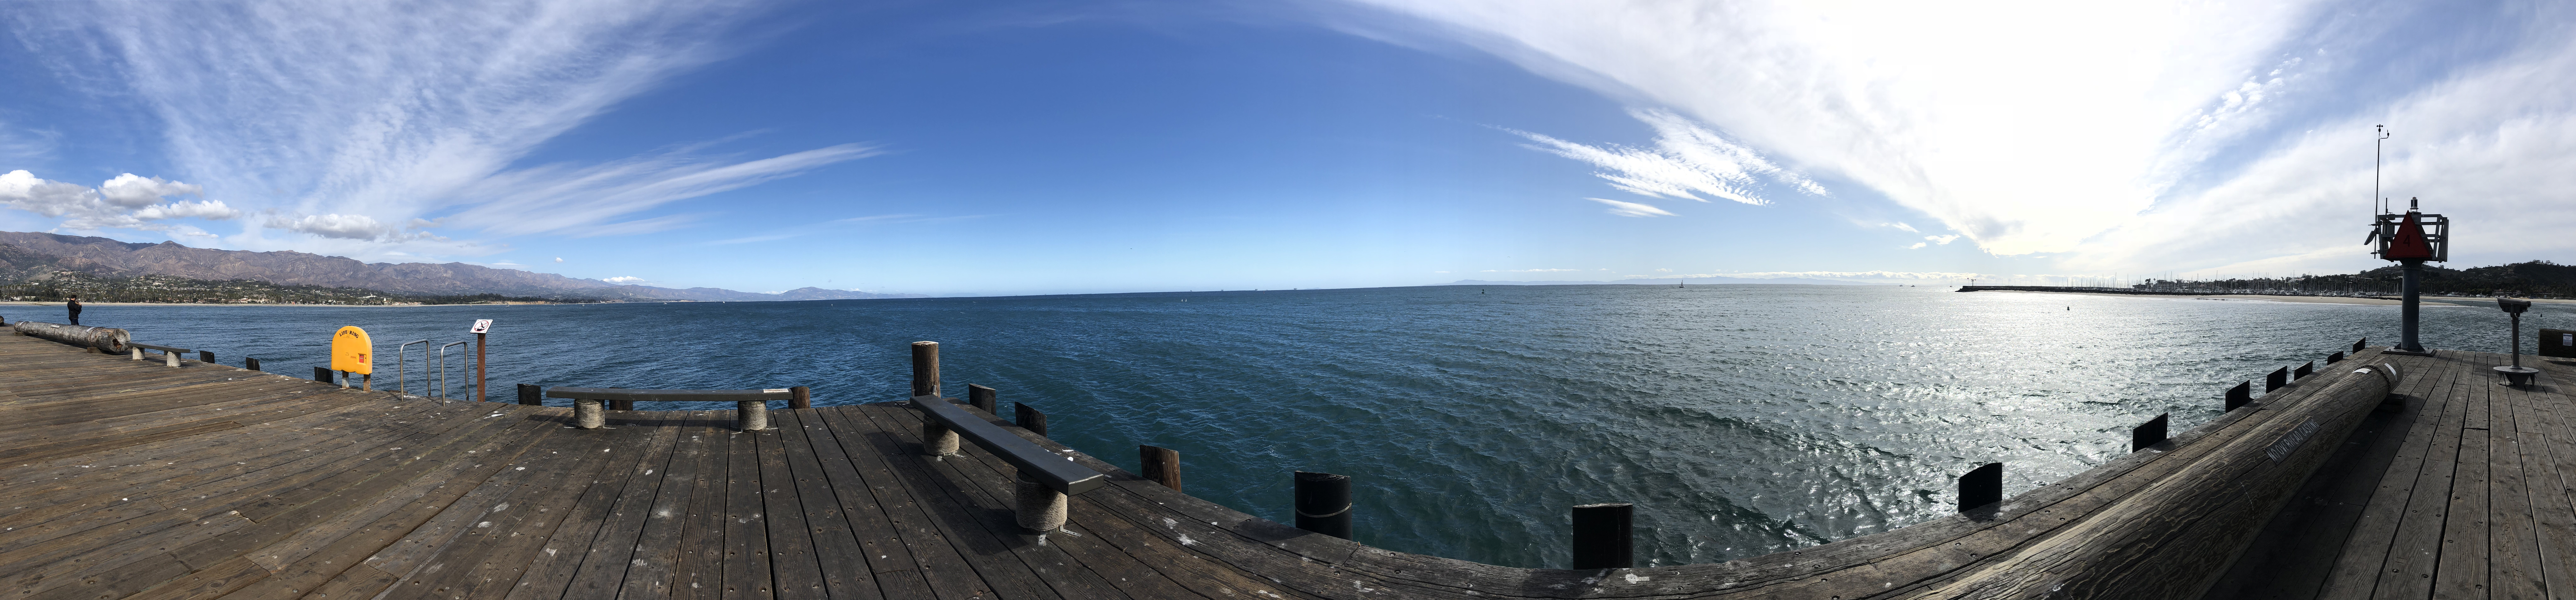 The view from Santa Barbara Pier